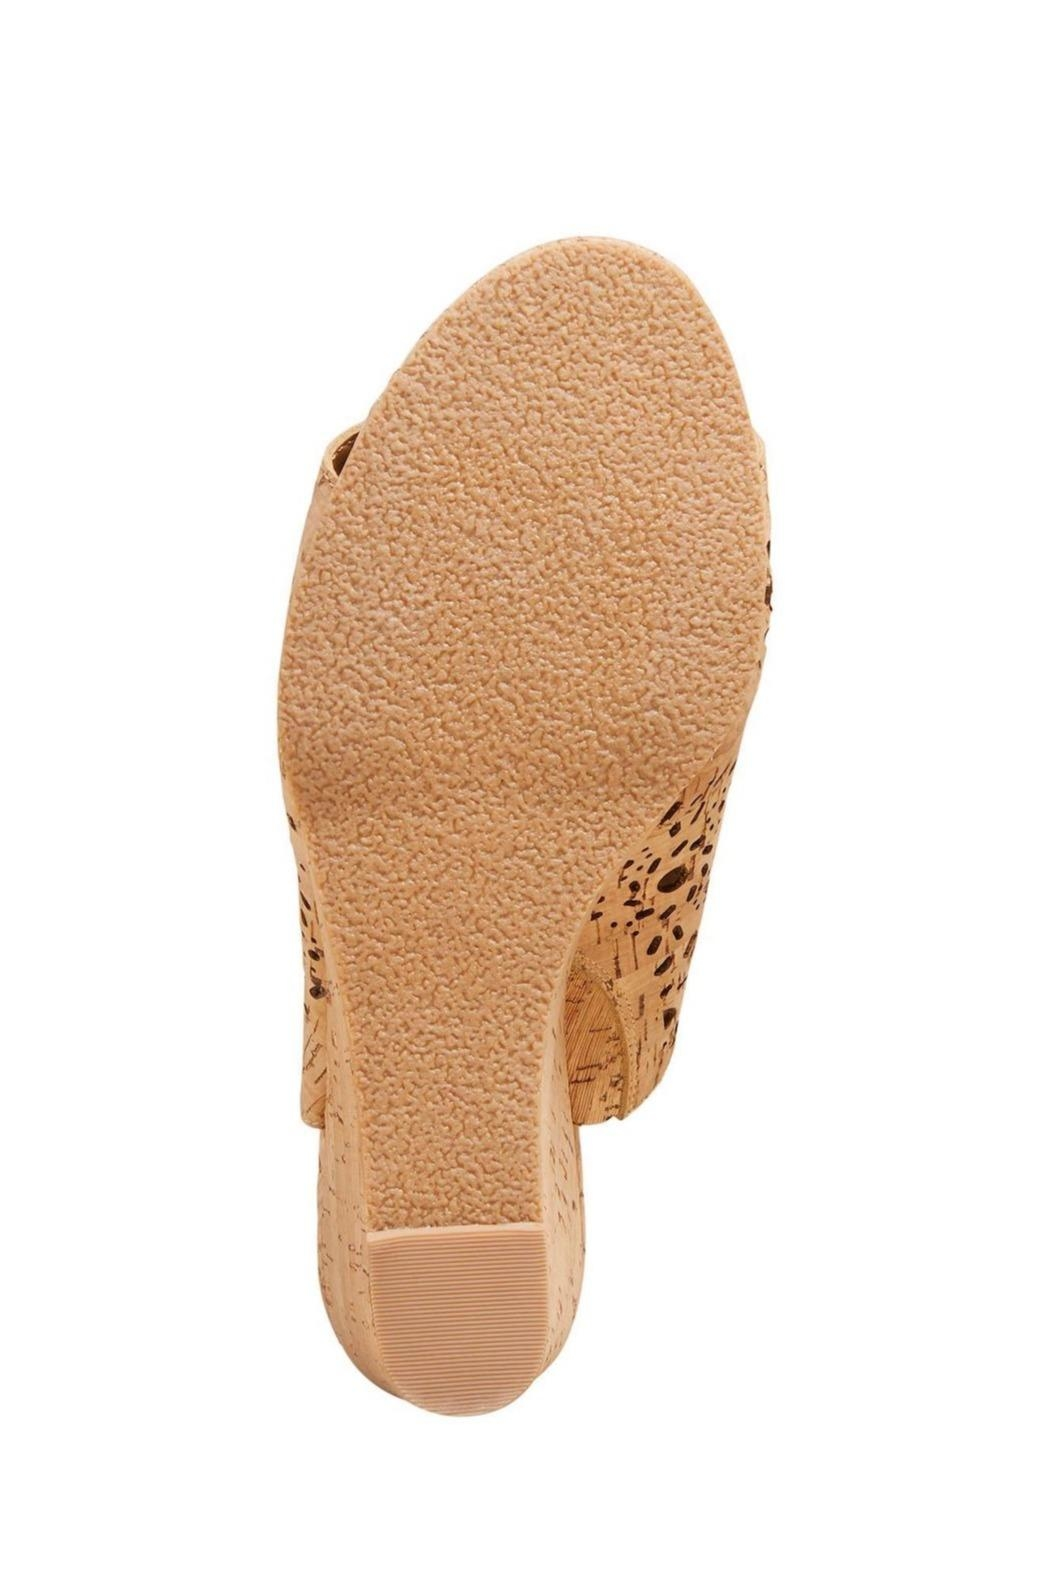 Jack Rogers Ronnie Cork Wedge - Back Cropped Image